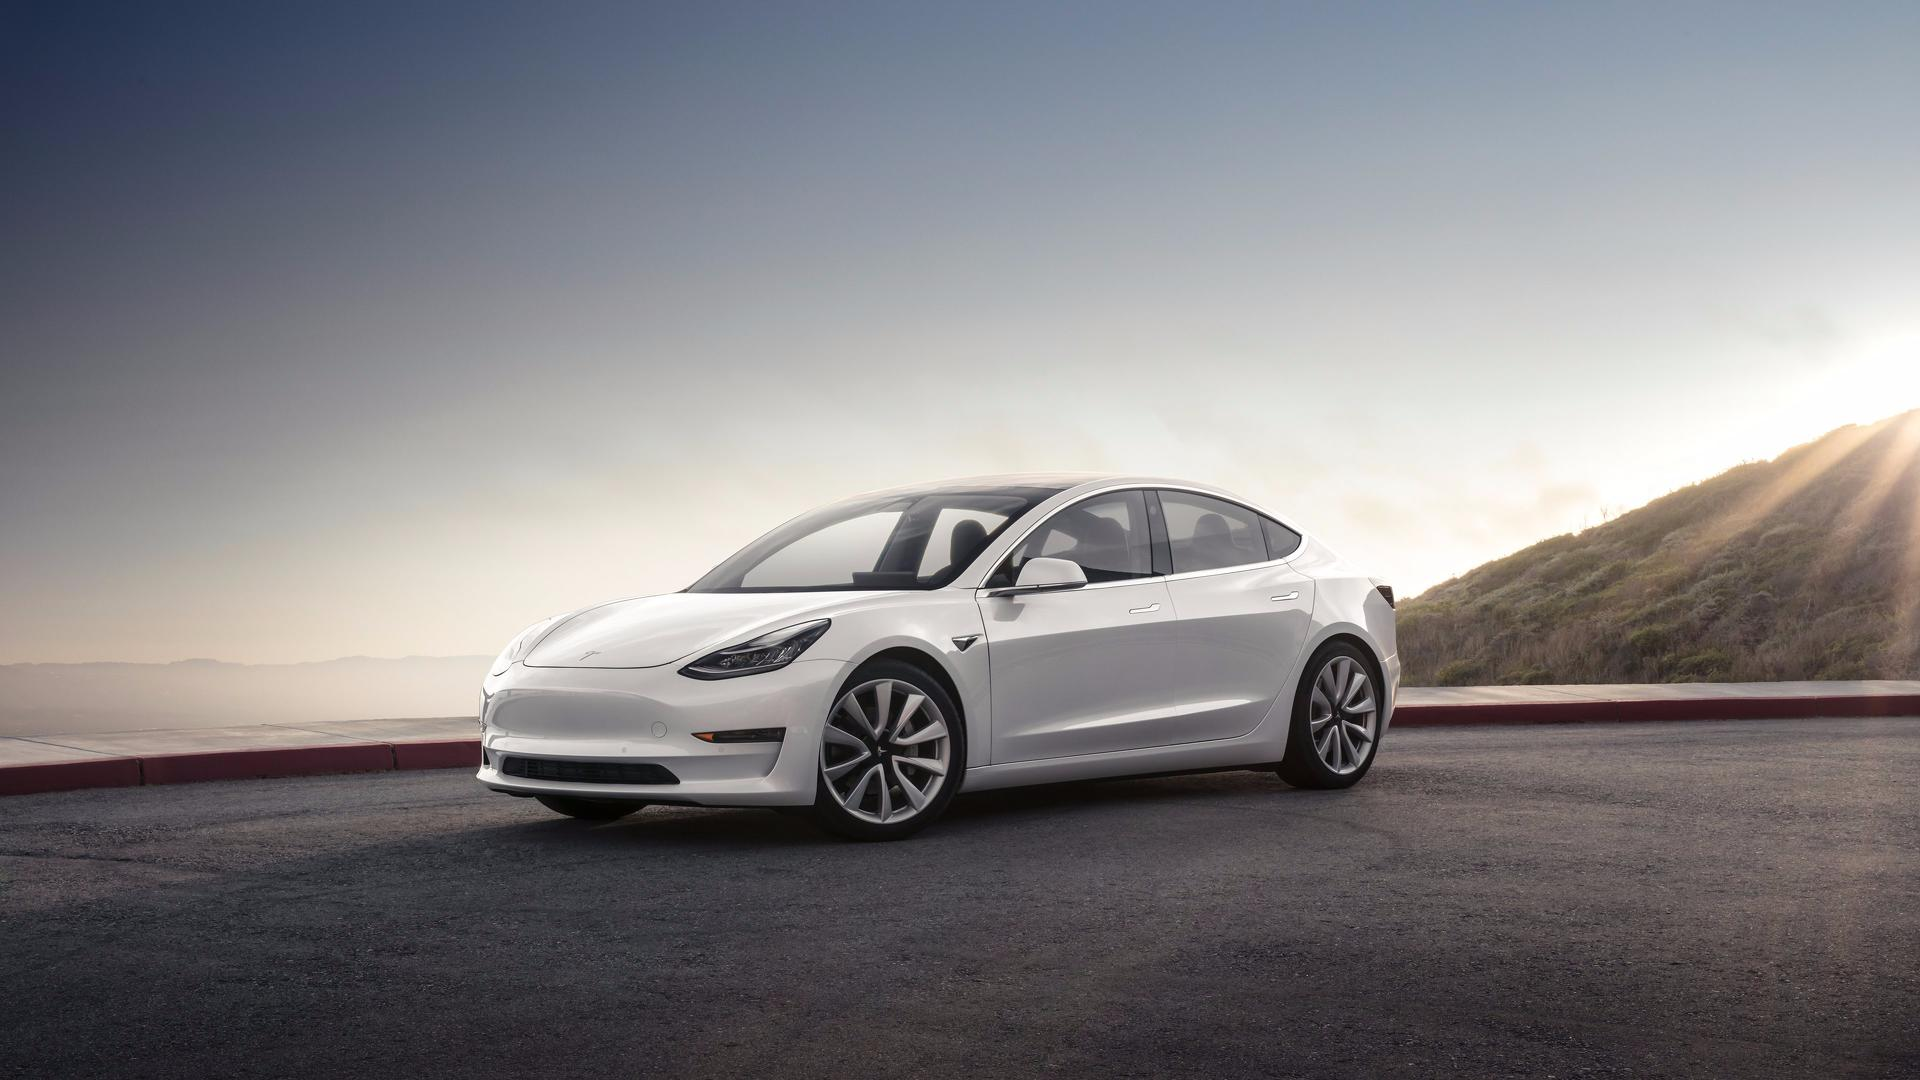 In 7 Months, Tesla Sold Almost 50,000 Electric Cars In Western Europe